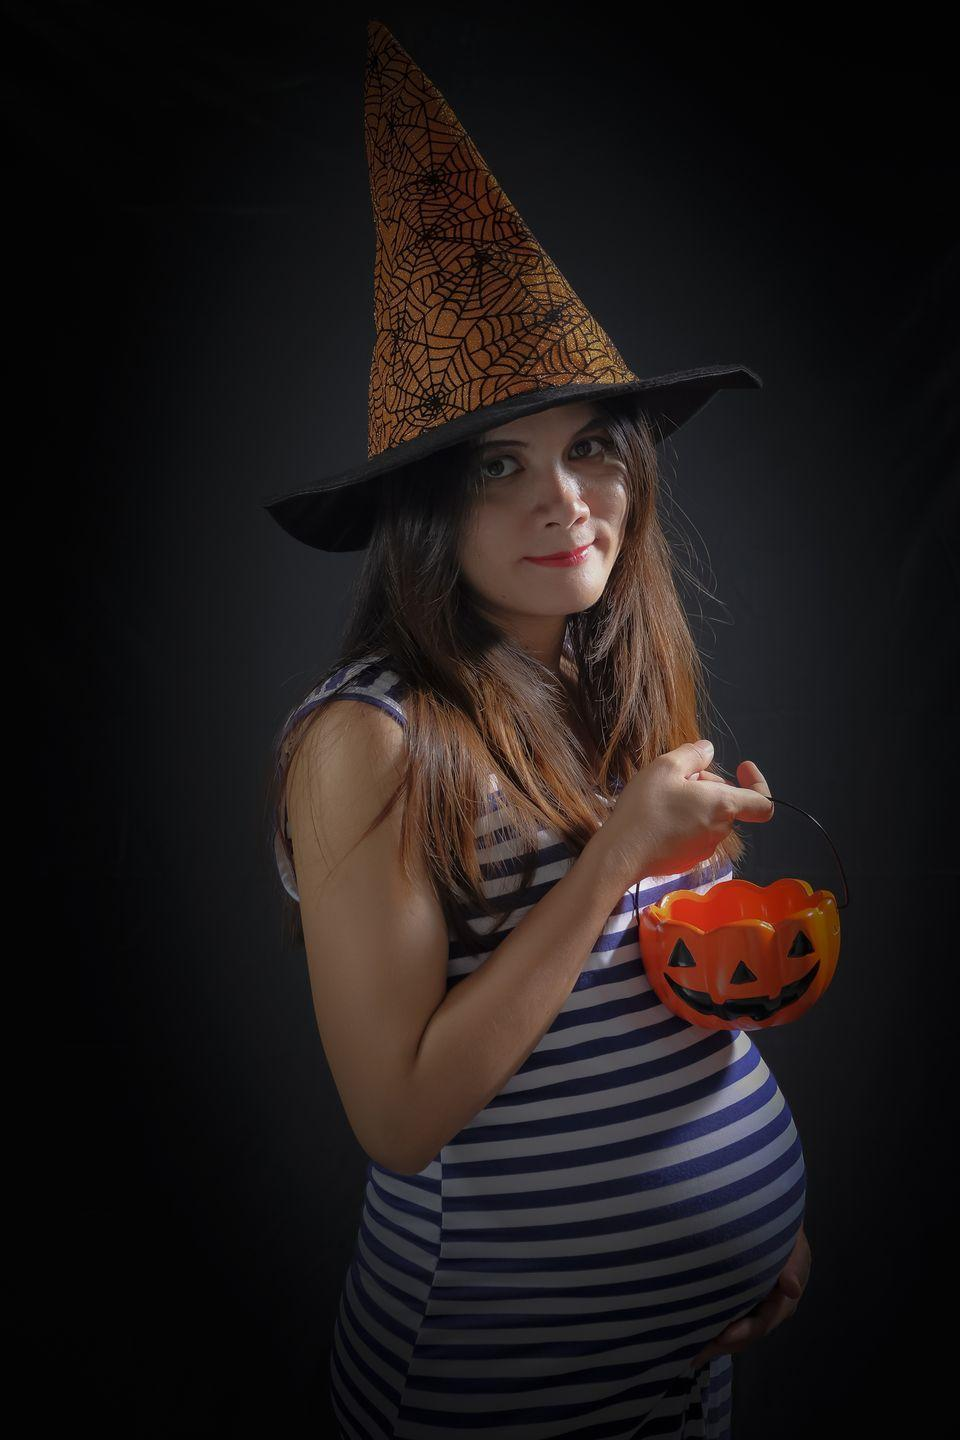 """<p>You can never go wrong dressed as a witch—it's a tried-and-true Halloween classic. But there's no need to go all out with a head-to-toe get-up, nose warts and all—just wear whatever makes you feel most comfortable and let a spooky pointed hat speak for itself. </p><p><a class=""""link rapid-noclick-resp"""" href=""""https://www.amazon.com/Beistle-Satin-Soft-Black-Accessory-1-Count/dp/B000R4KNE2/?tag=syn-yahoo-20&ascsubtag=%5Bartid%7C10050.g.4972%5Bsrc%7Cyahoo-us"""" rel=""""nofollow noopener"""" target=""""_blank"""" data-ylk=""""slk:SHOP WITCH HATS"""">SHOP WITCH HATS</a></p>"""